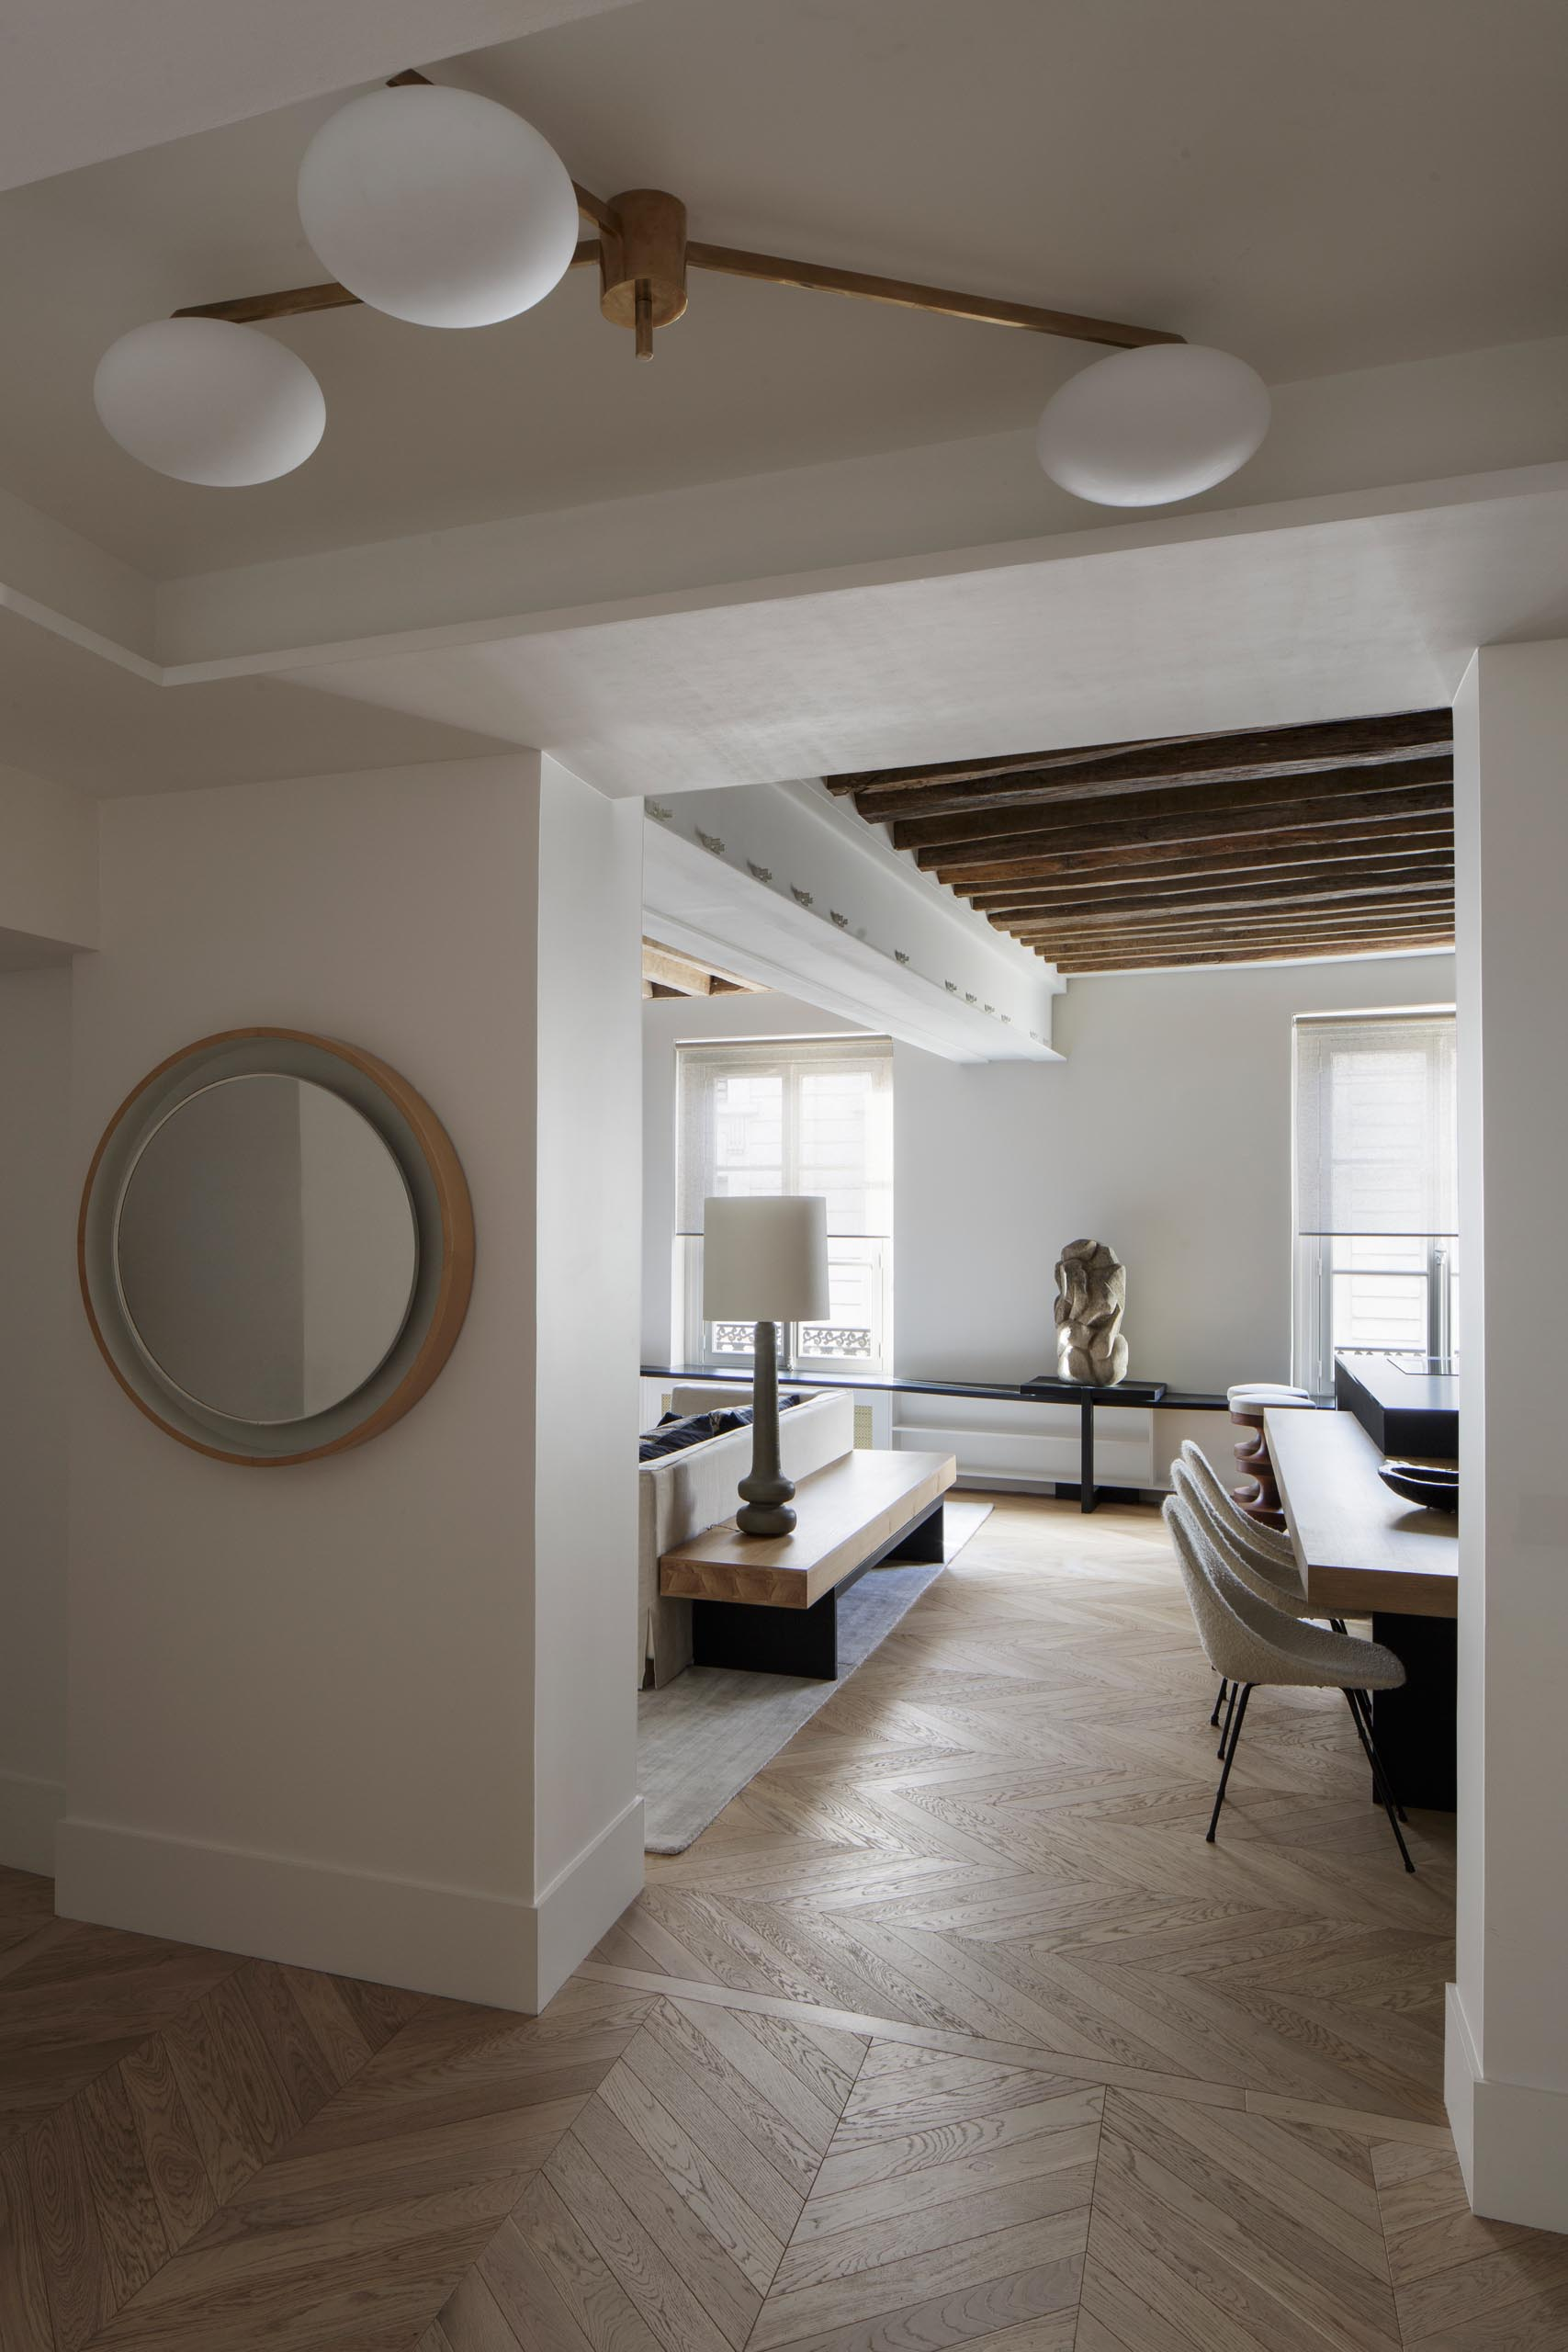 A modern entryway with light wood floors that flow through to the living room and kitchen.